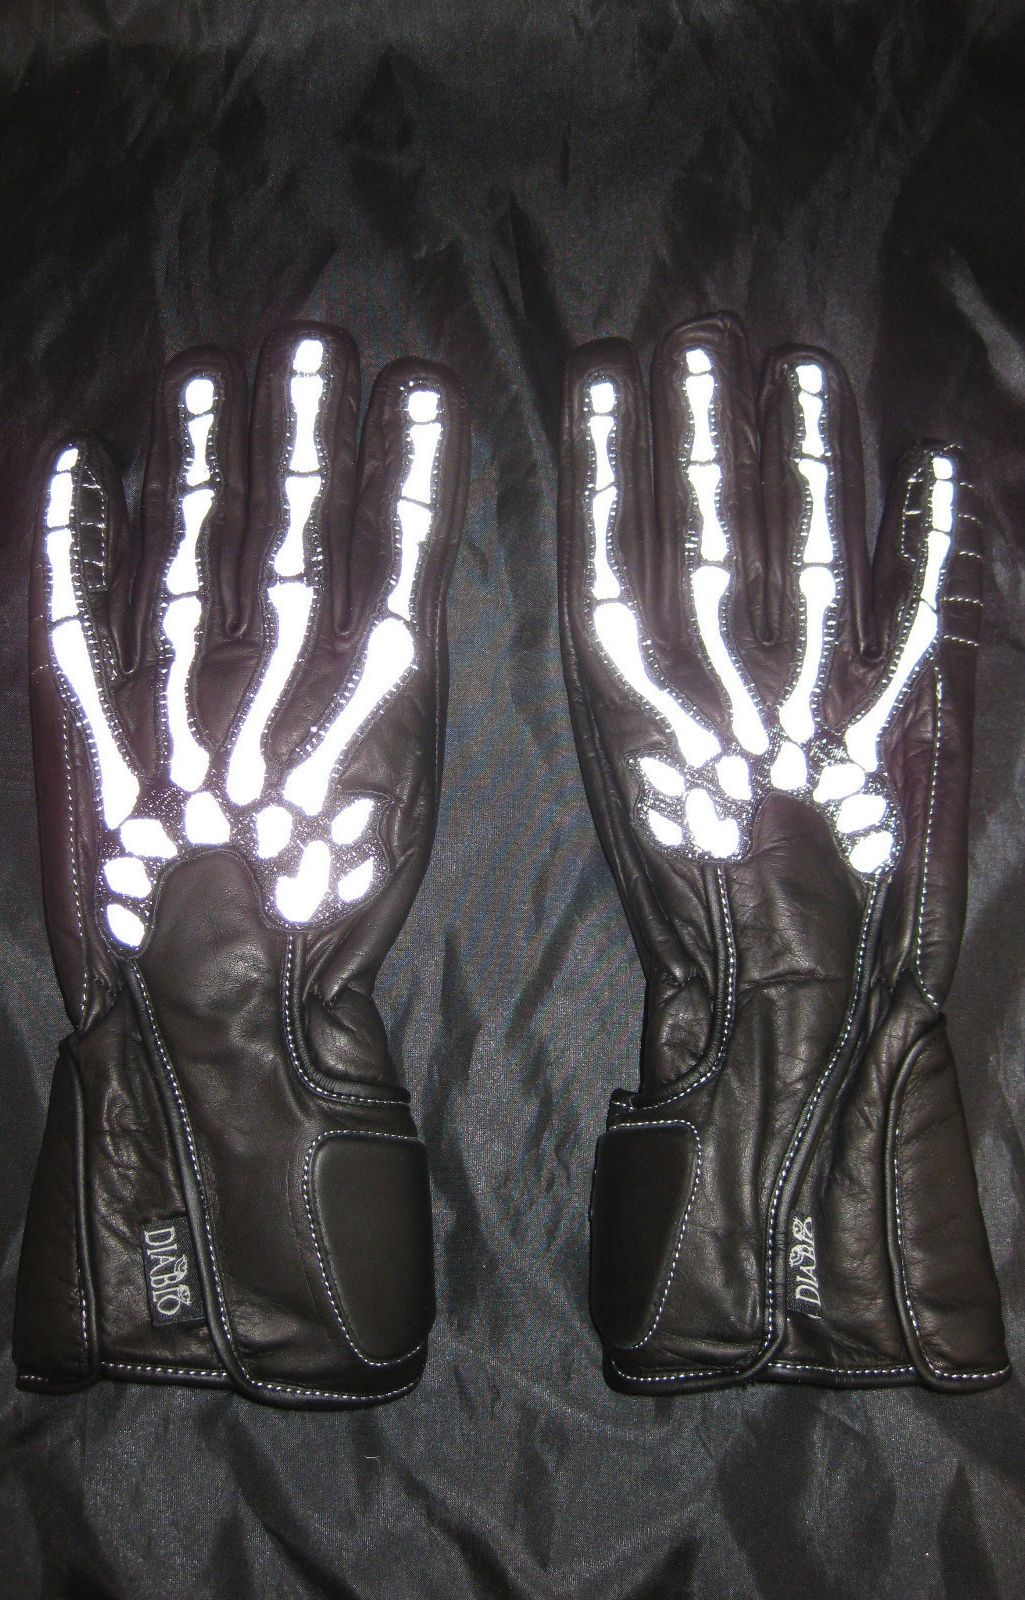 Motorcycle gloves bangalore - 3m Reflective Bones Skeleton Motorcycle Gloves Ebay Shop Motorcyclecustomizing